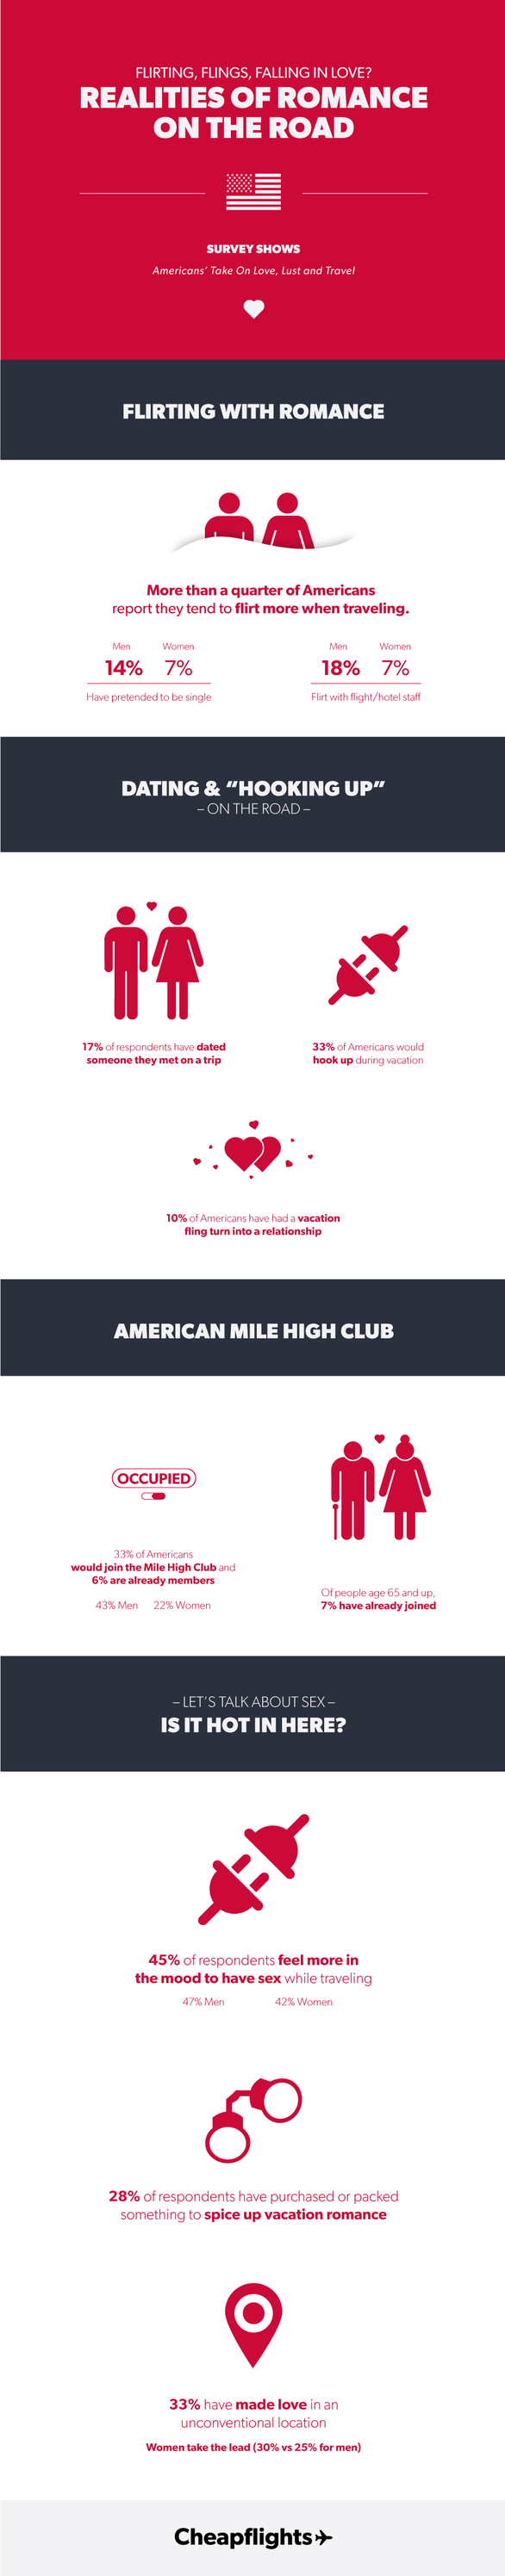 2016-02-11-1455213589-5448828-CheapFlights_Infographic_USA.png